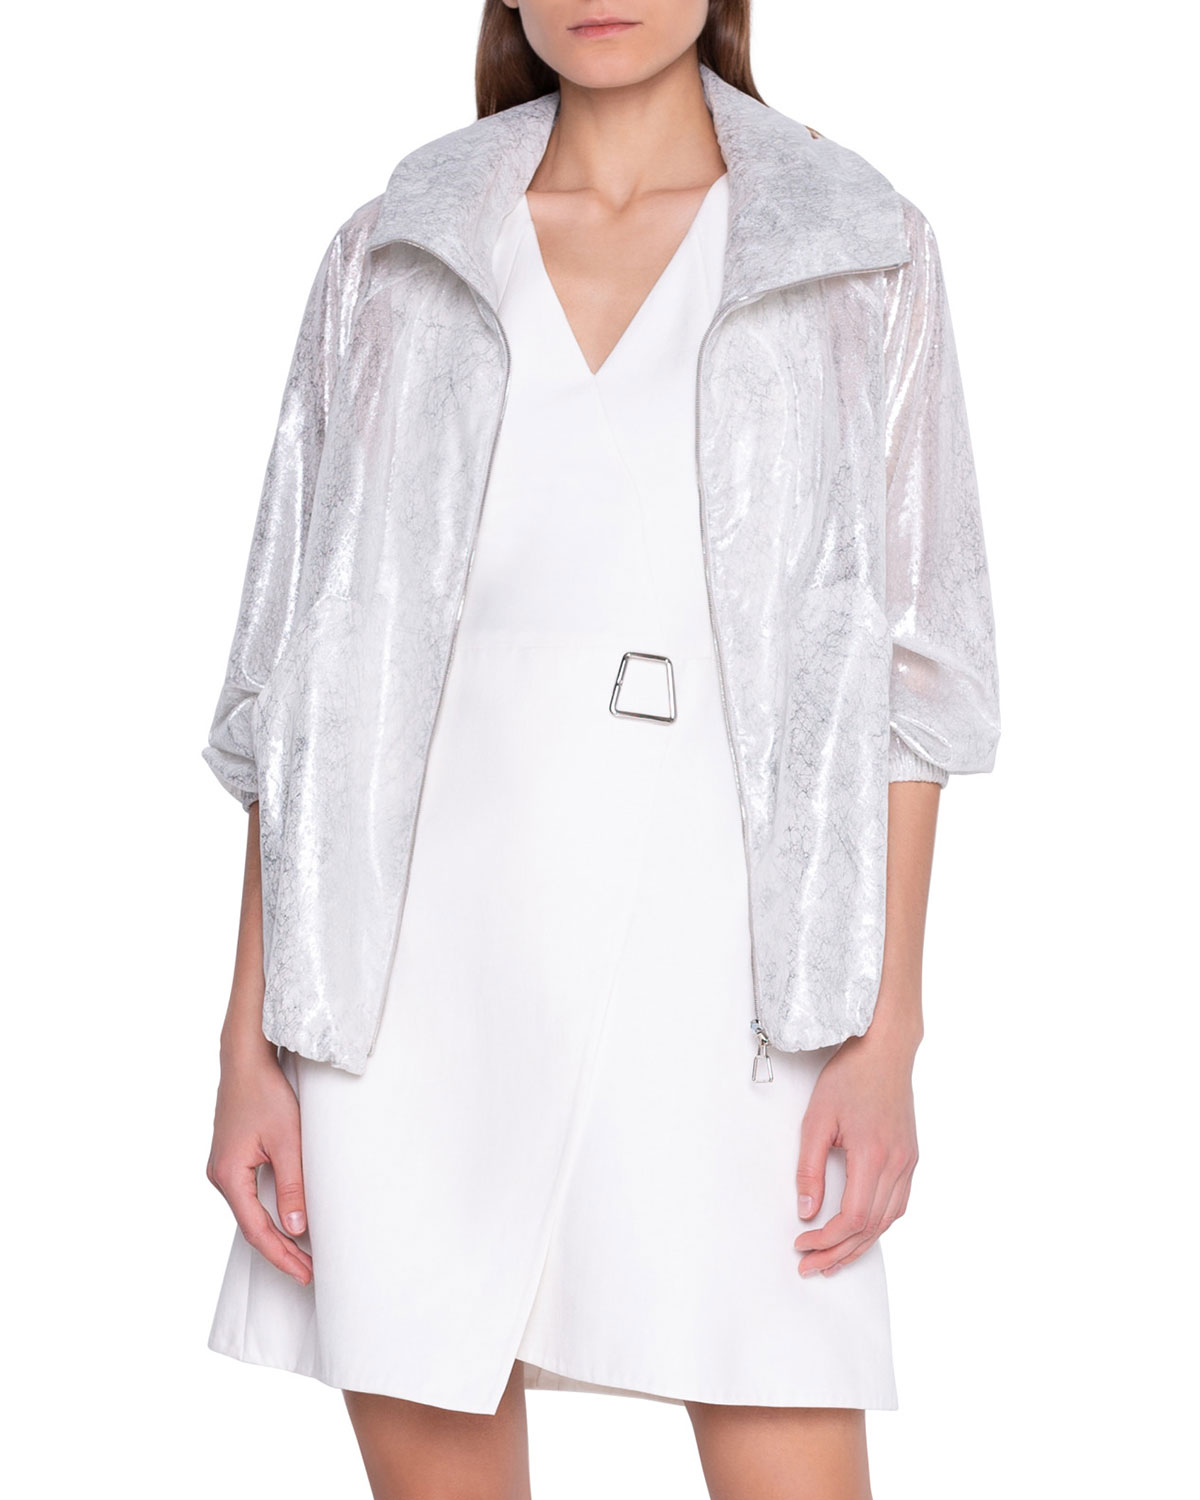 Akris Sheer Cracked-Wind Resistant Jacket and Matching Items & Matching Items